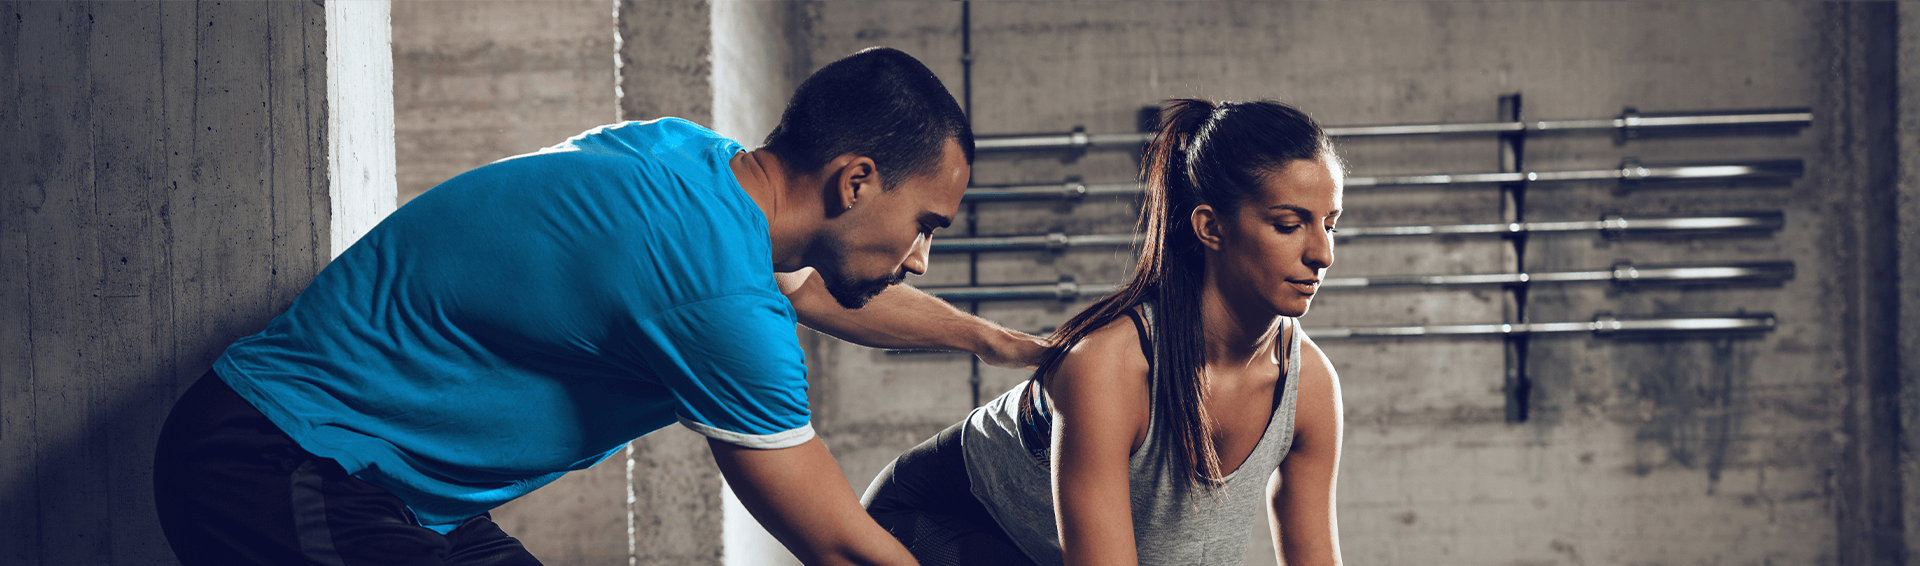 Is It Worth It To Be a Personal Trainer?